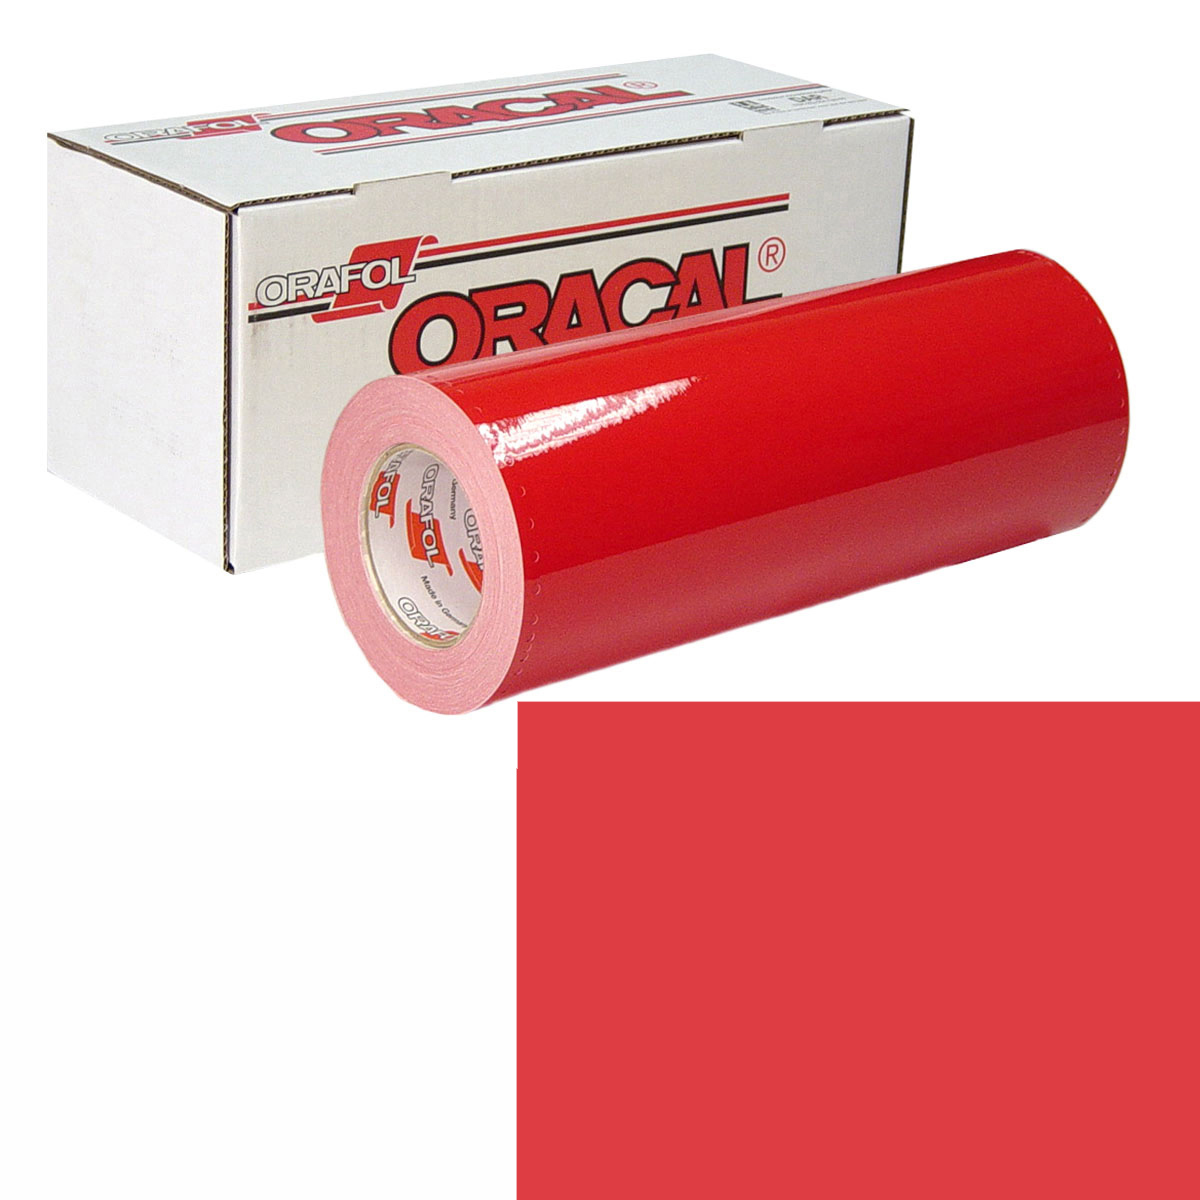 ORACAL 951 30In X 50Yd 347 Red Coral